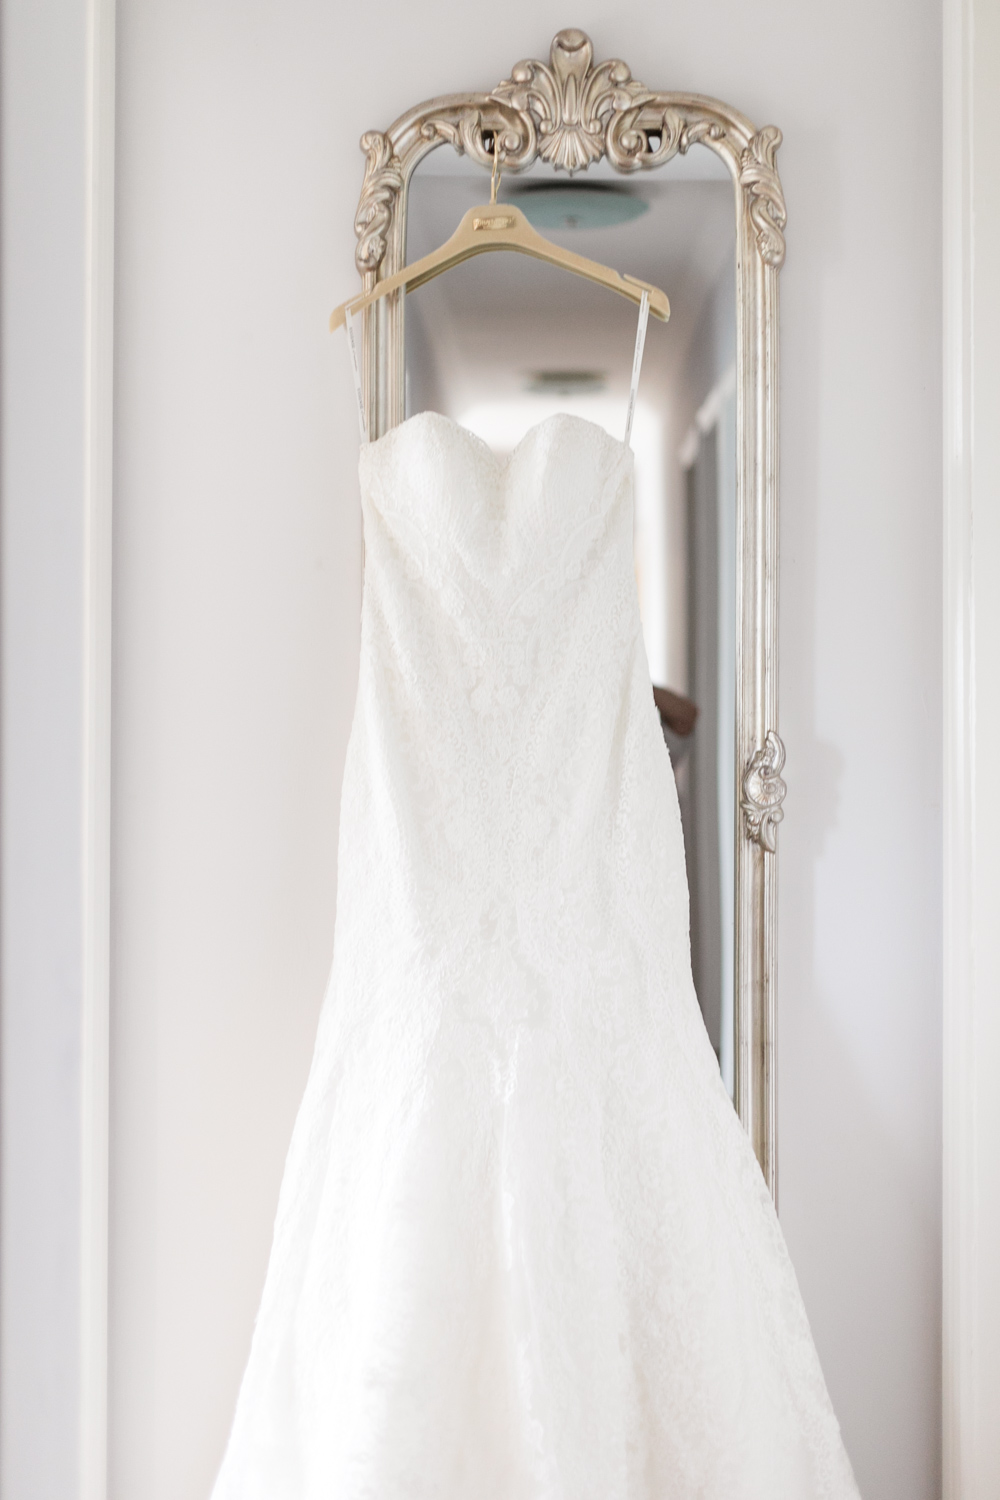 White wedding dress hanging on a vintage mirror